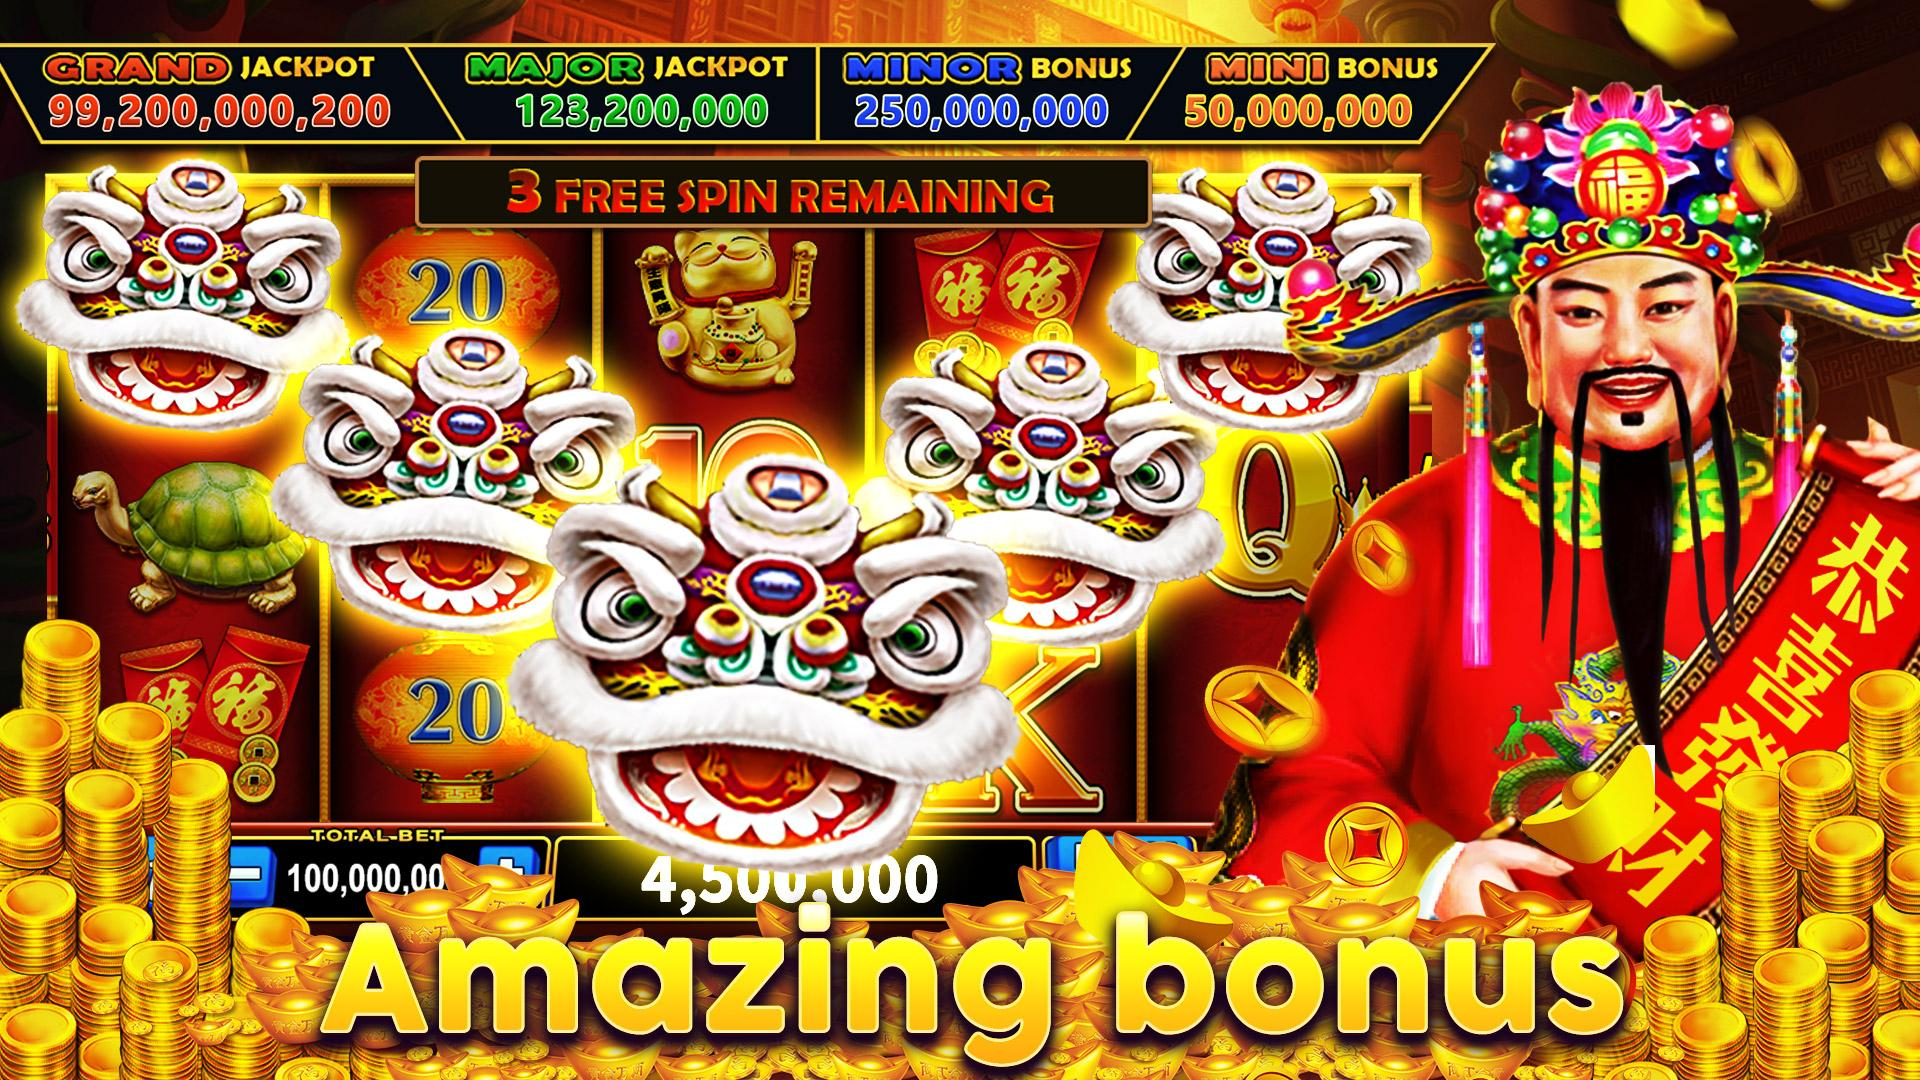 Vegas Casino Slots 2020 - 2,000,000 Free Coins 1.0.34 Screenshot 3